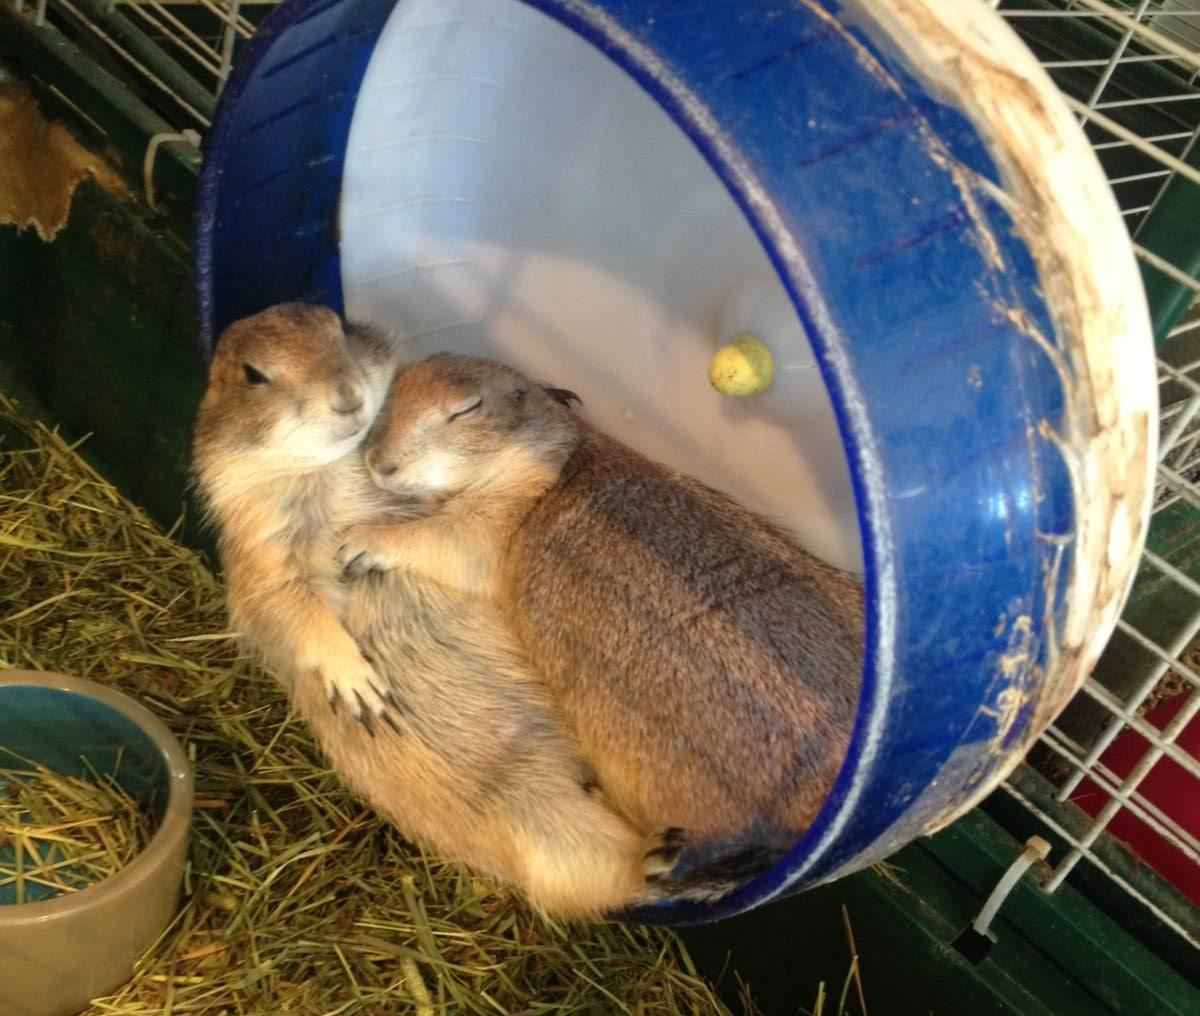 Two gophers sleep on a running wheel in their cage